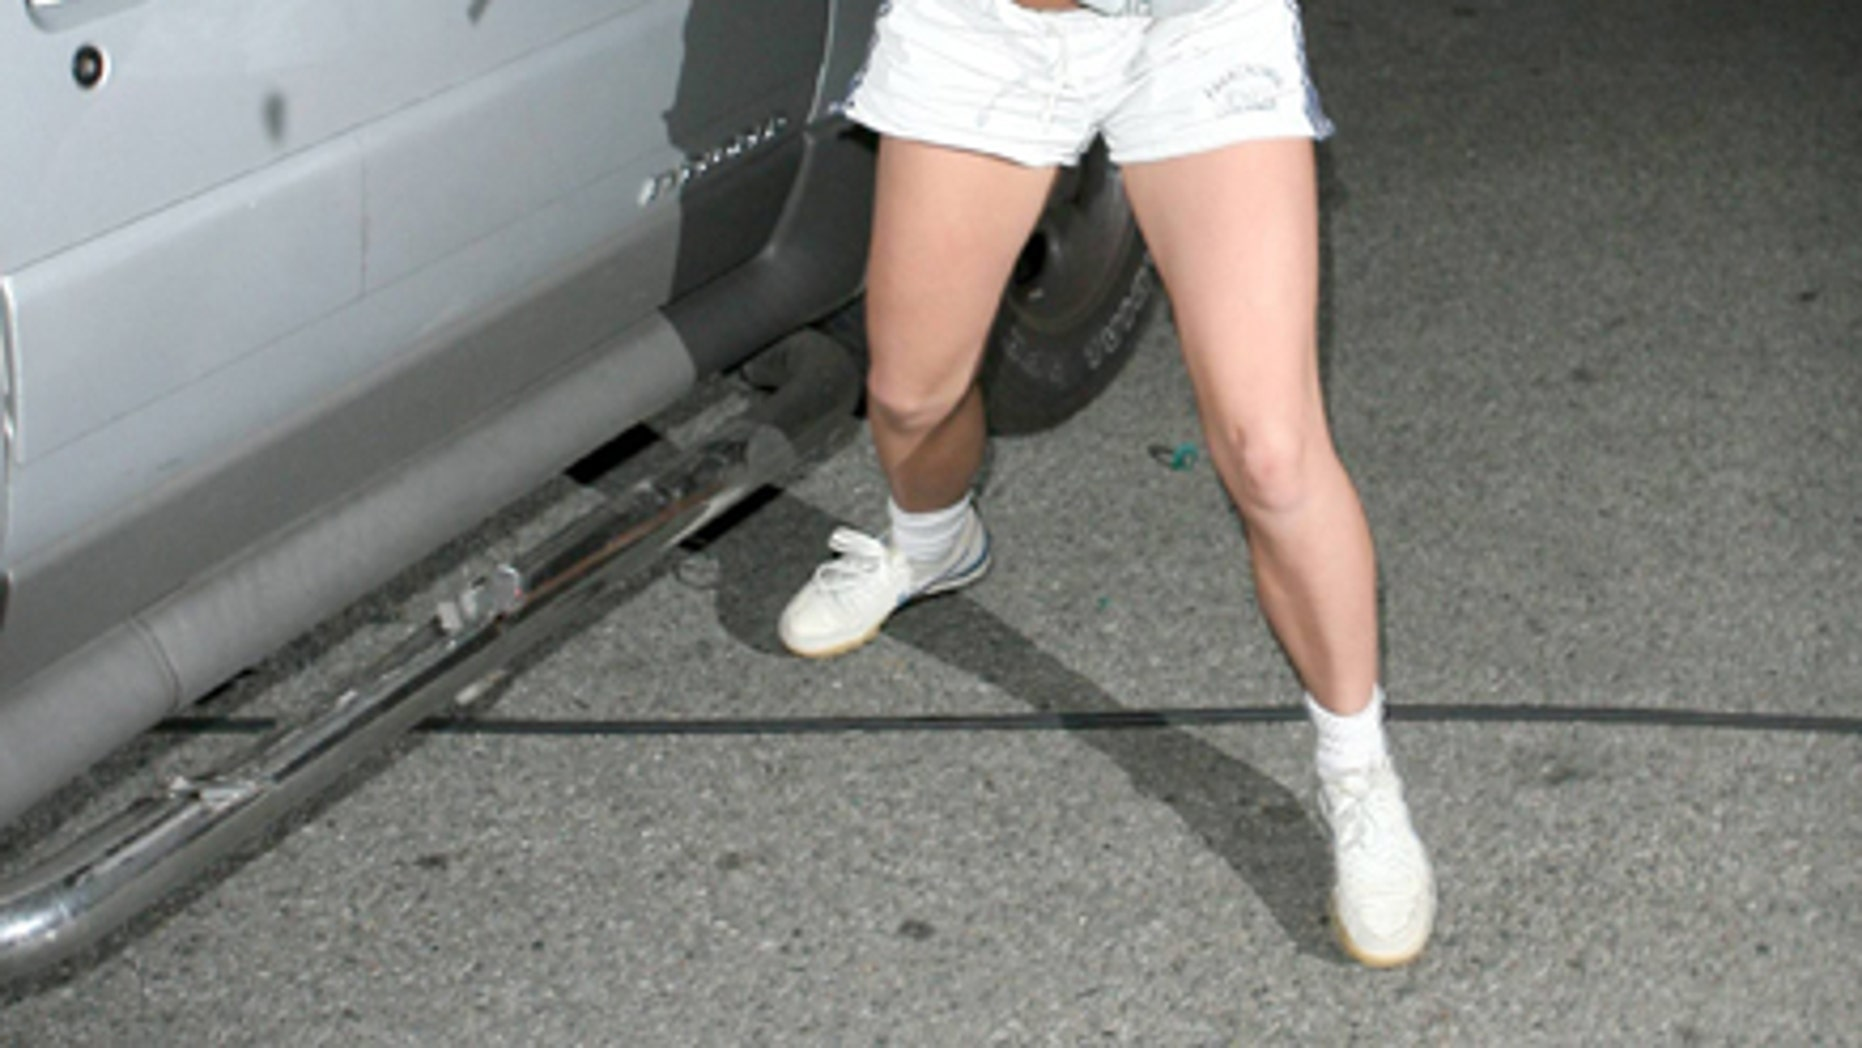 Britney Spears took an umbrella and hit an empty car Feb 21, 2007.